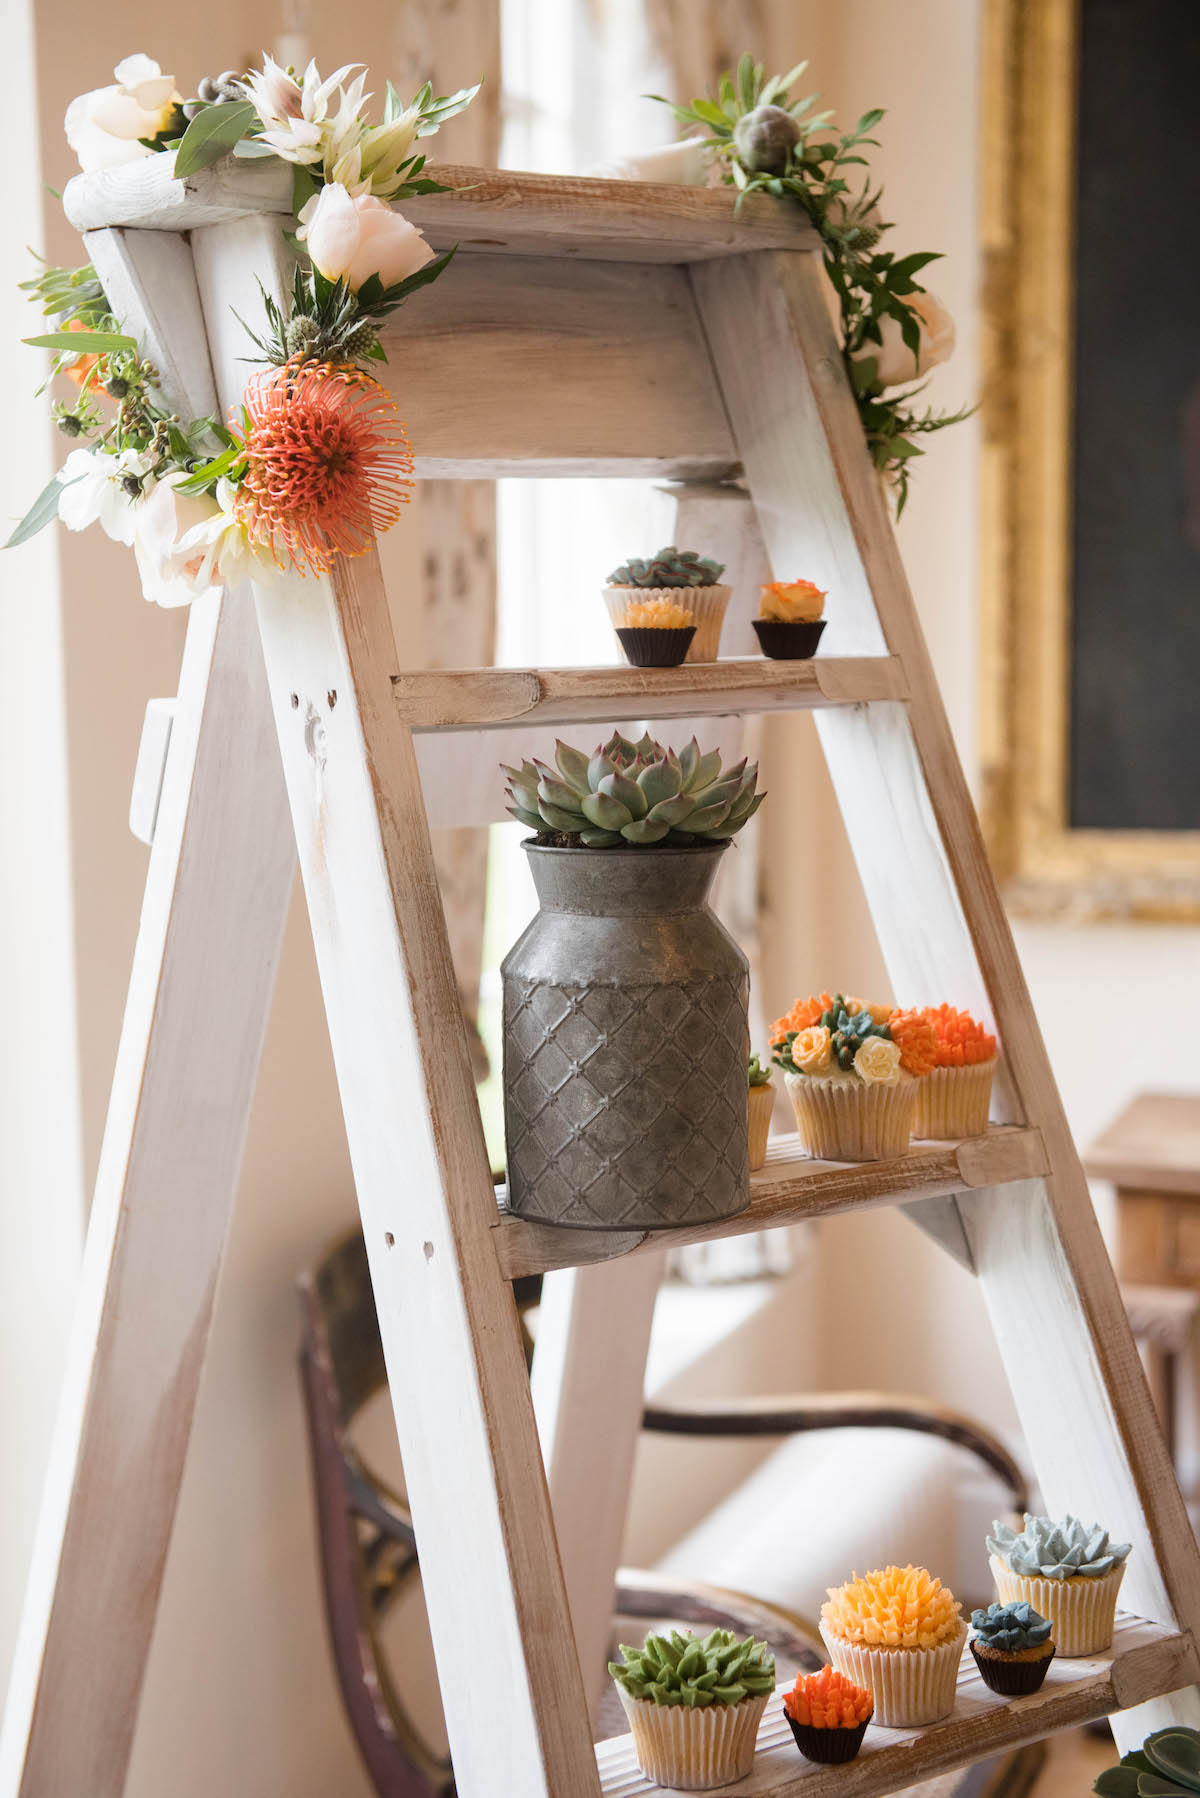 Wedding ladder with Orange flowers and floral cupcakes